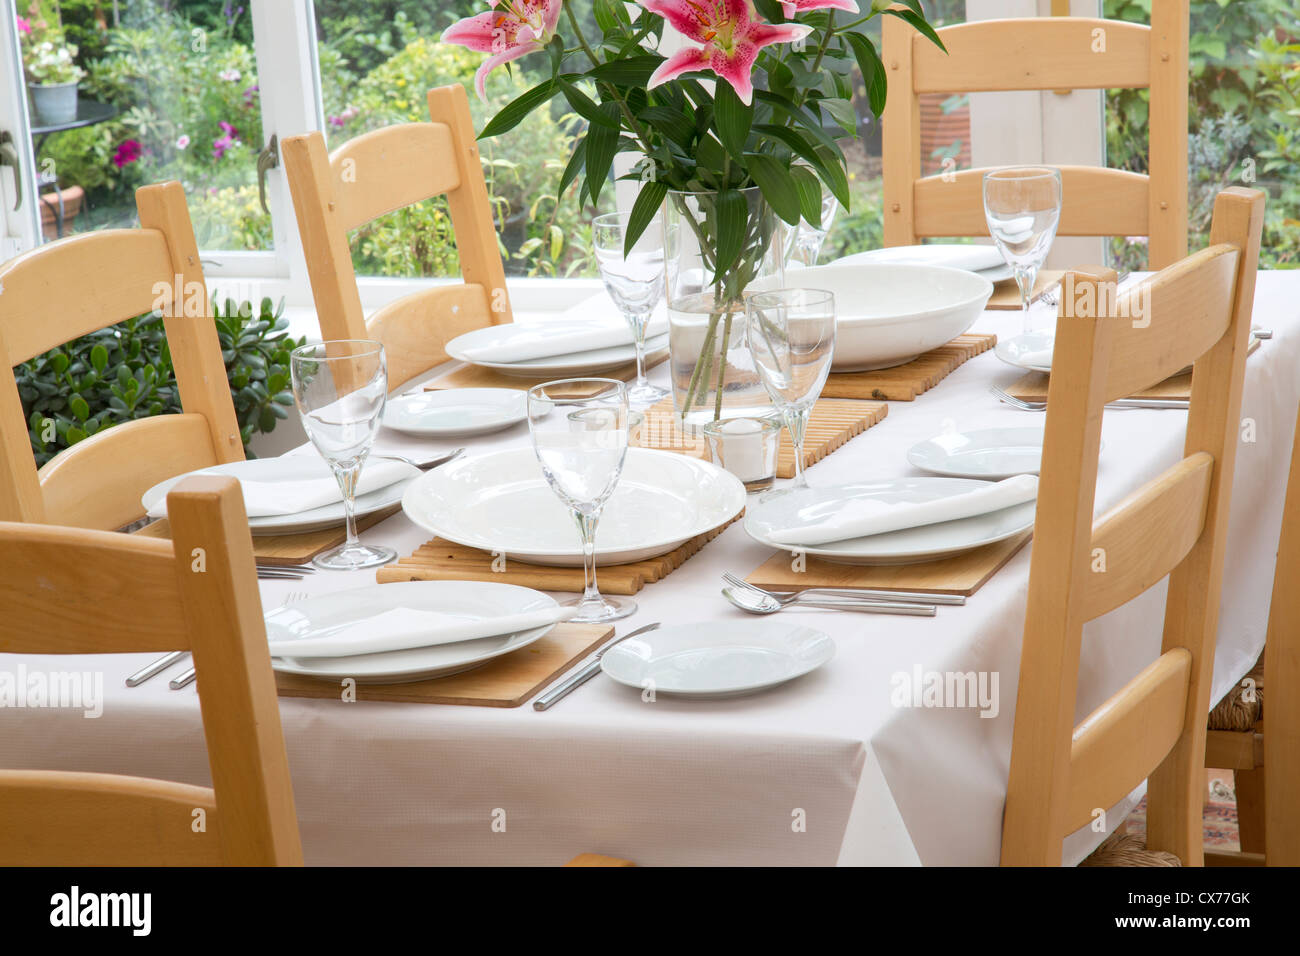 SET DINING TABLE - Stock Image